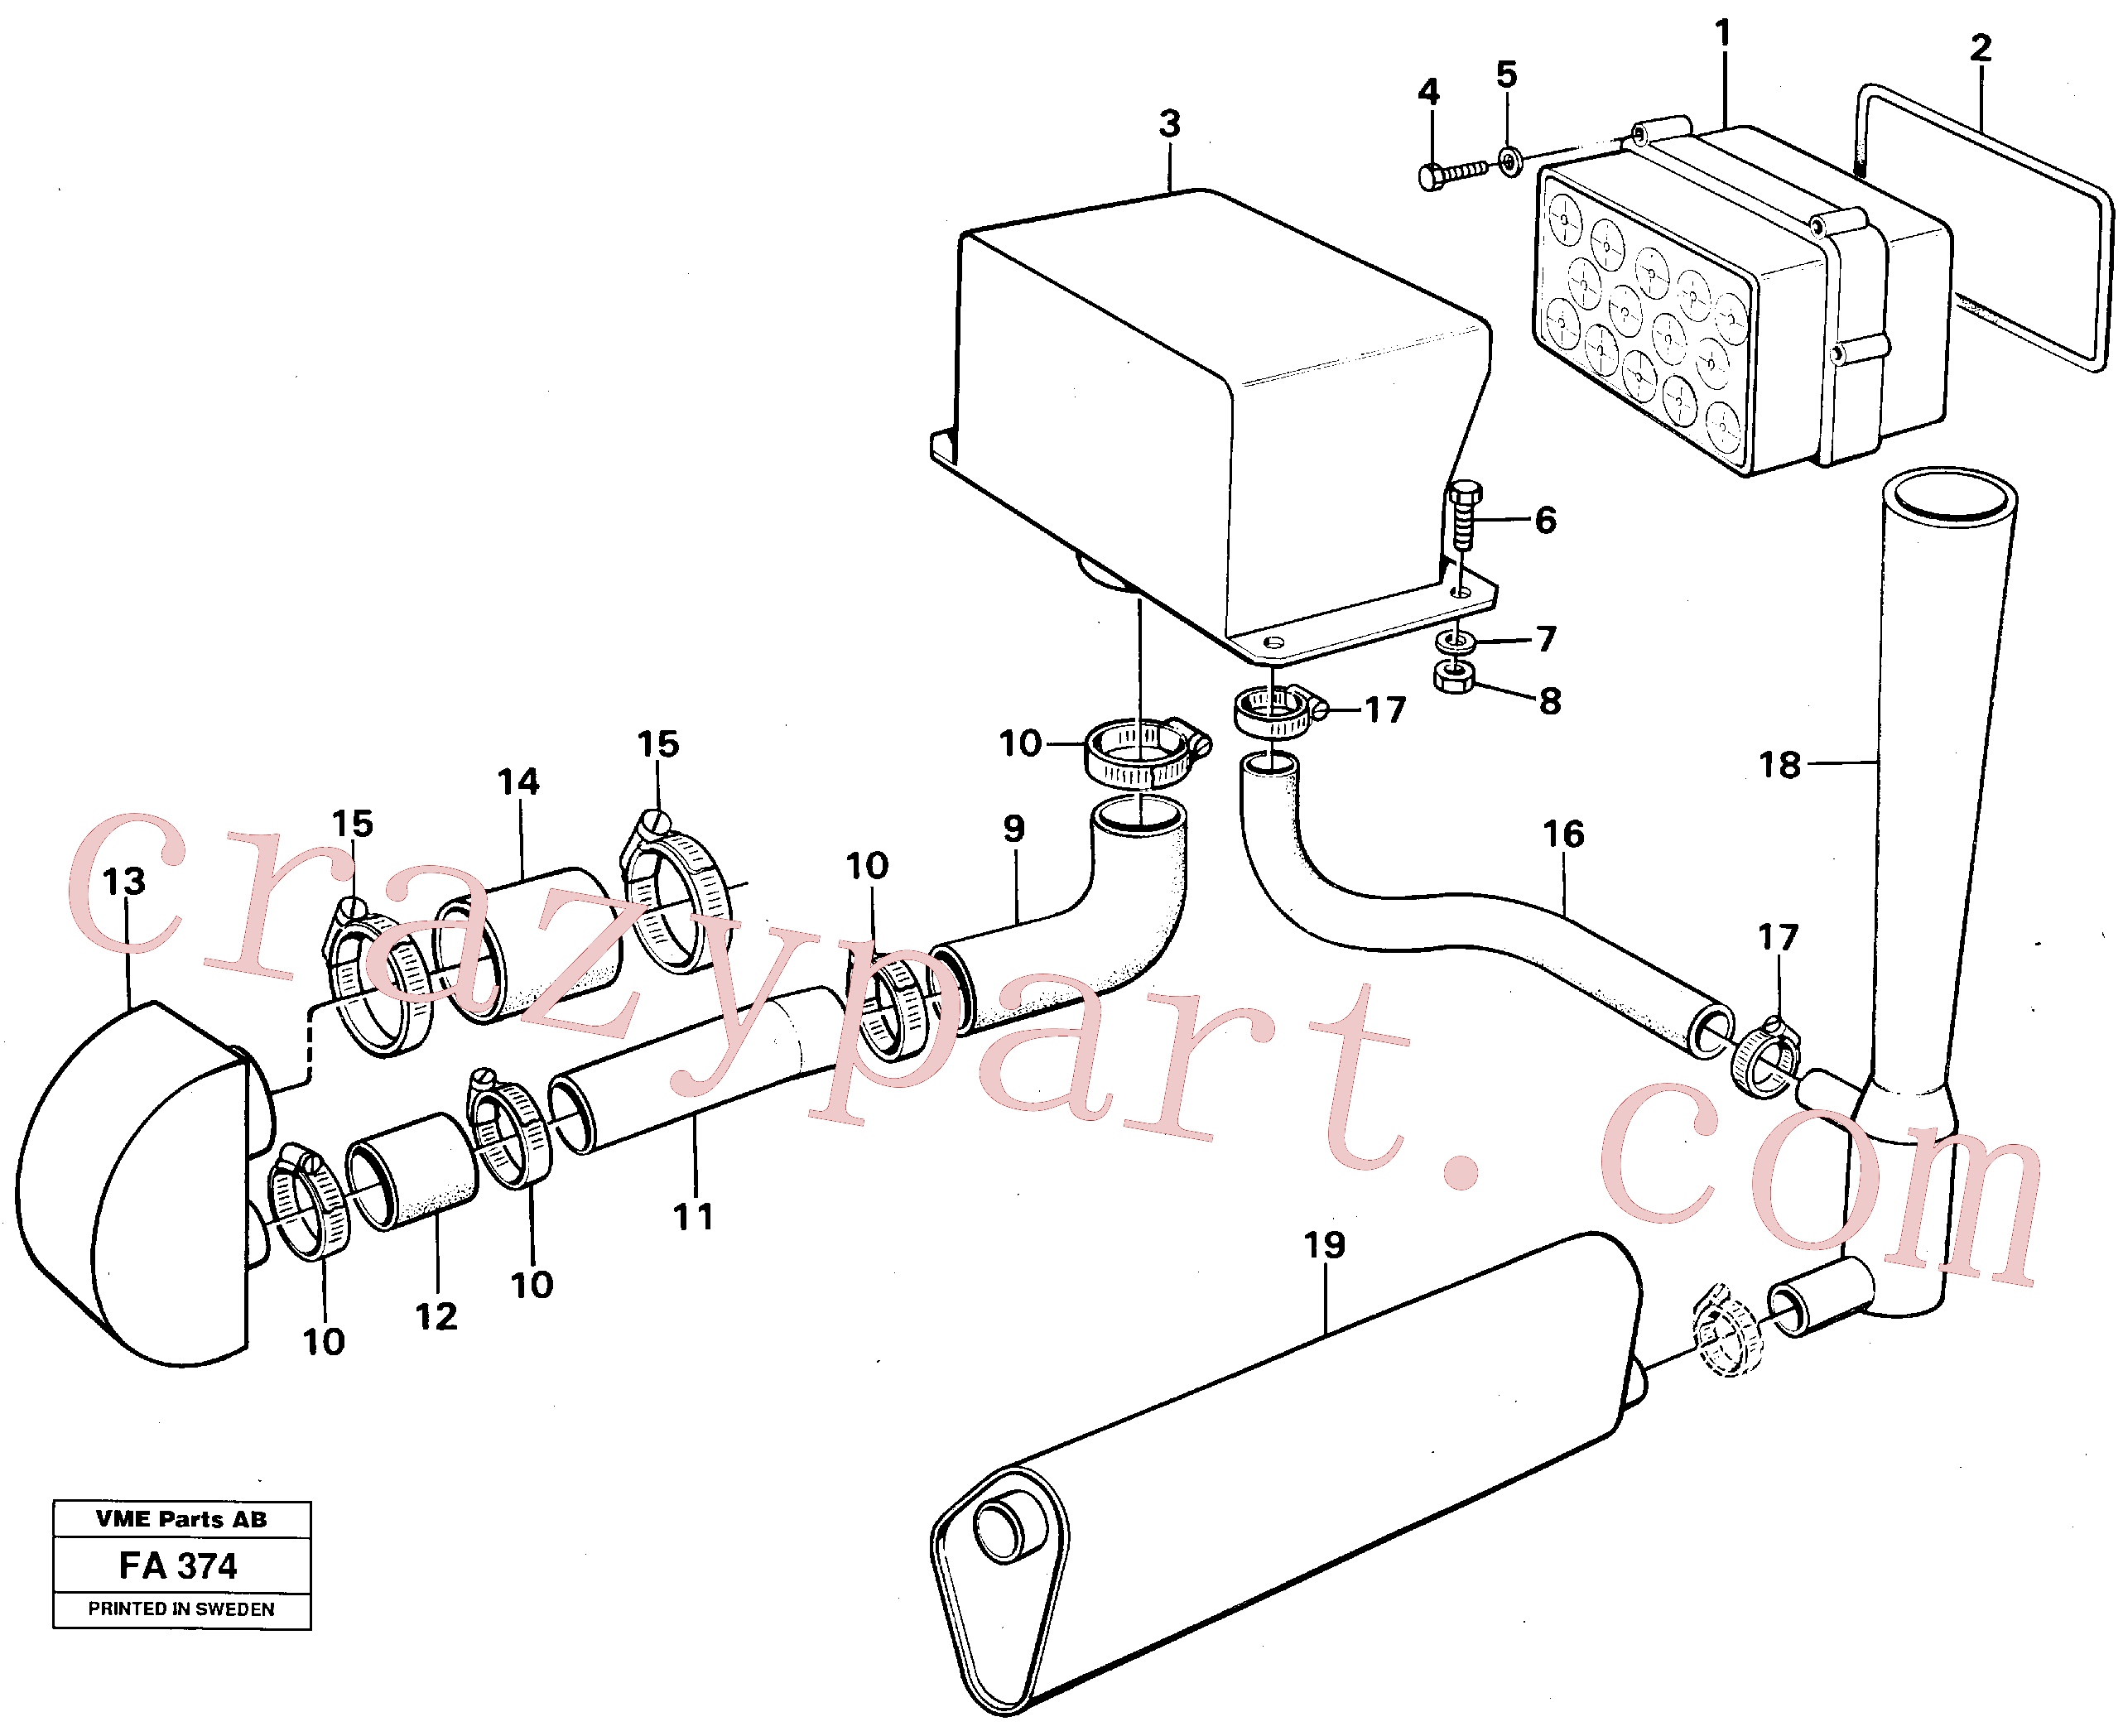 VOE476522 for Volvo Precyclone with ejector(FA374 assembly)